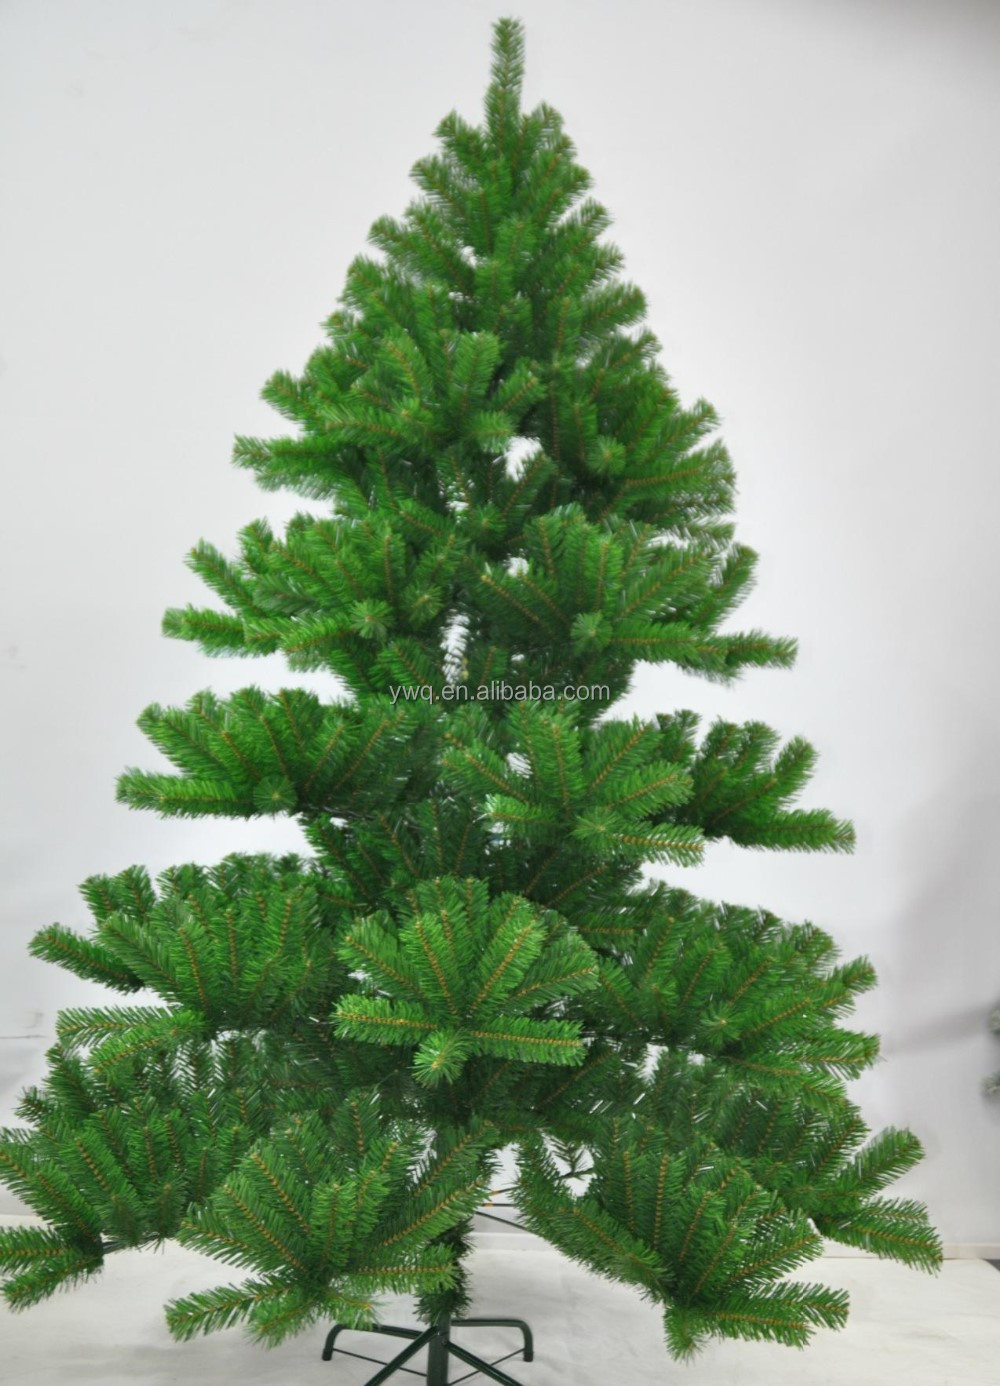 Wholesale Customized Styles Artificial Christmas